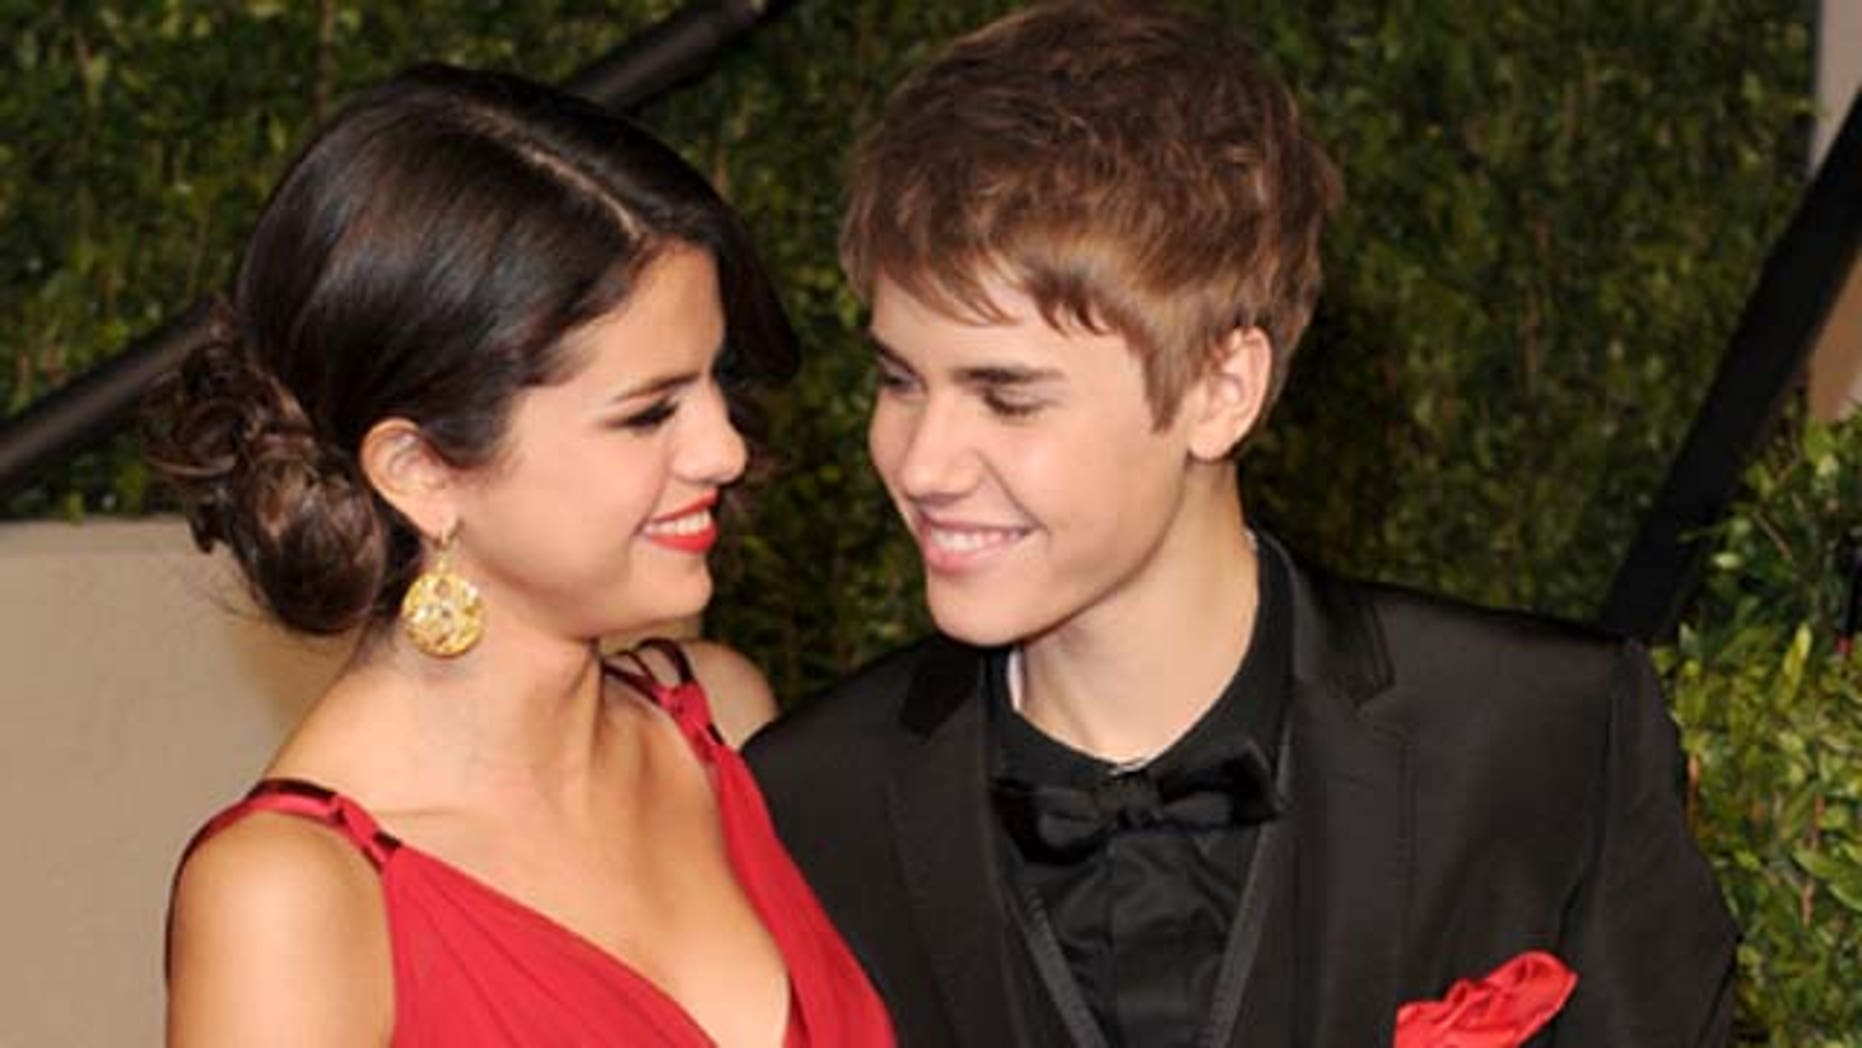 WEST HOLLYWOOD, CA - FEBRUARY 27:  Singer/actress Selena Gomez and singerJustin Bieber arrive at the Vanity Fair Oscar party hosted by Graydon Carter held at Sunset Tower on February 27, 2011 in West Hollywood, California.  (Photo by Craig Barritt/Getty Images)